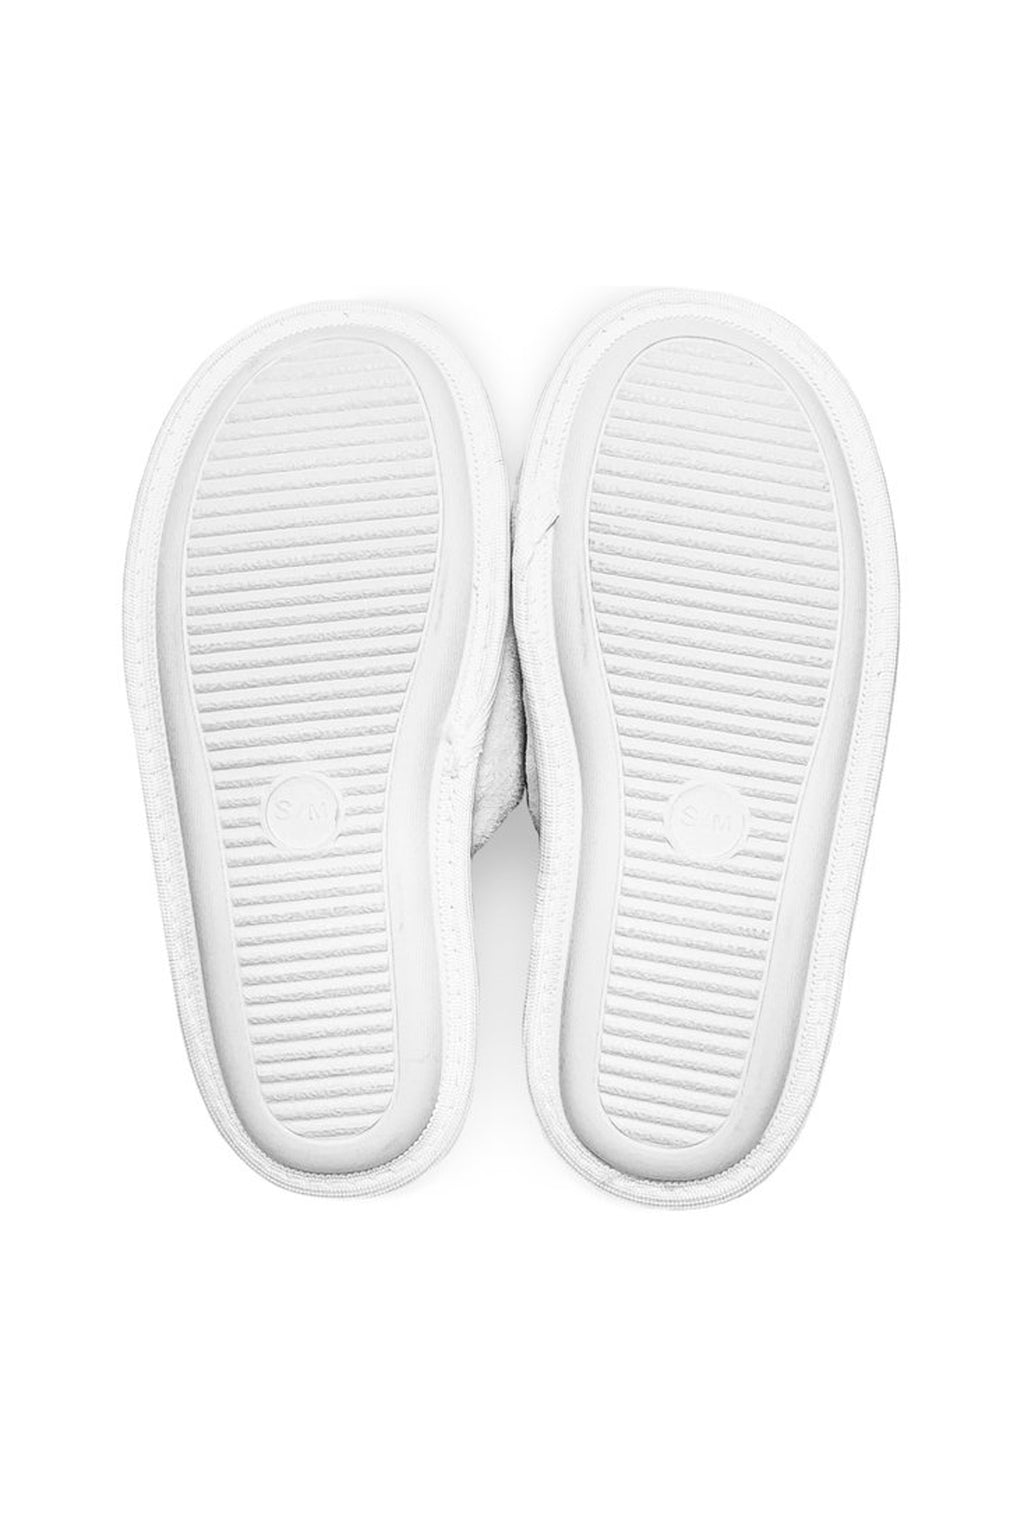 SLIPPERS - Dress Like Coco (White)